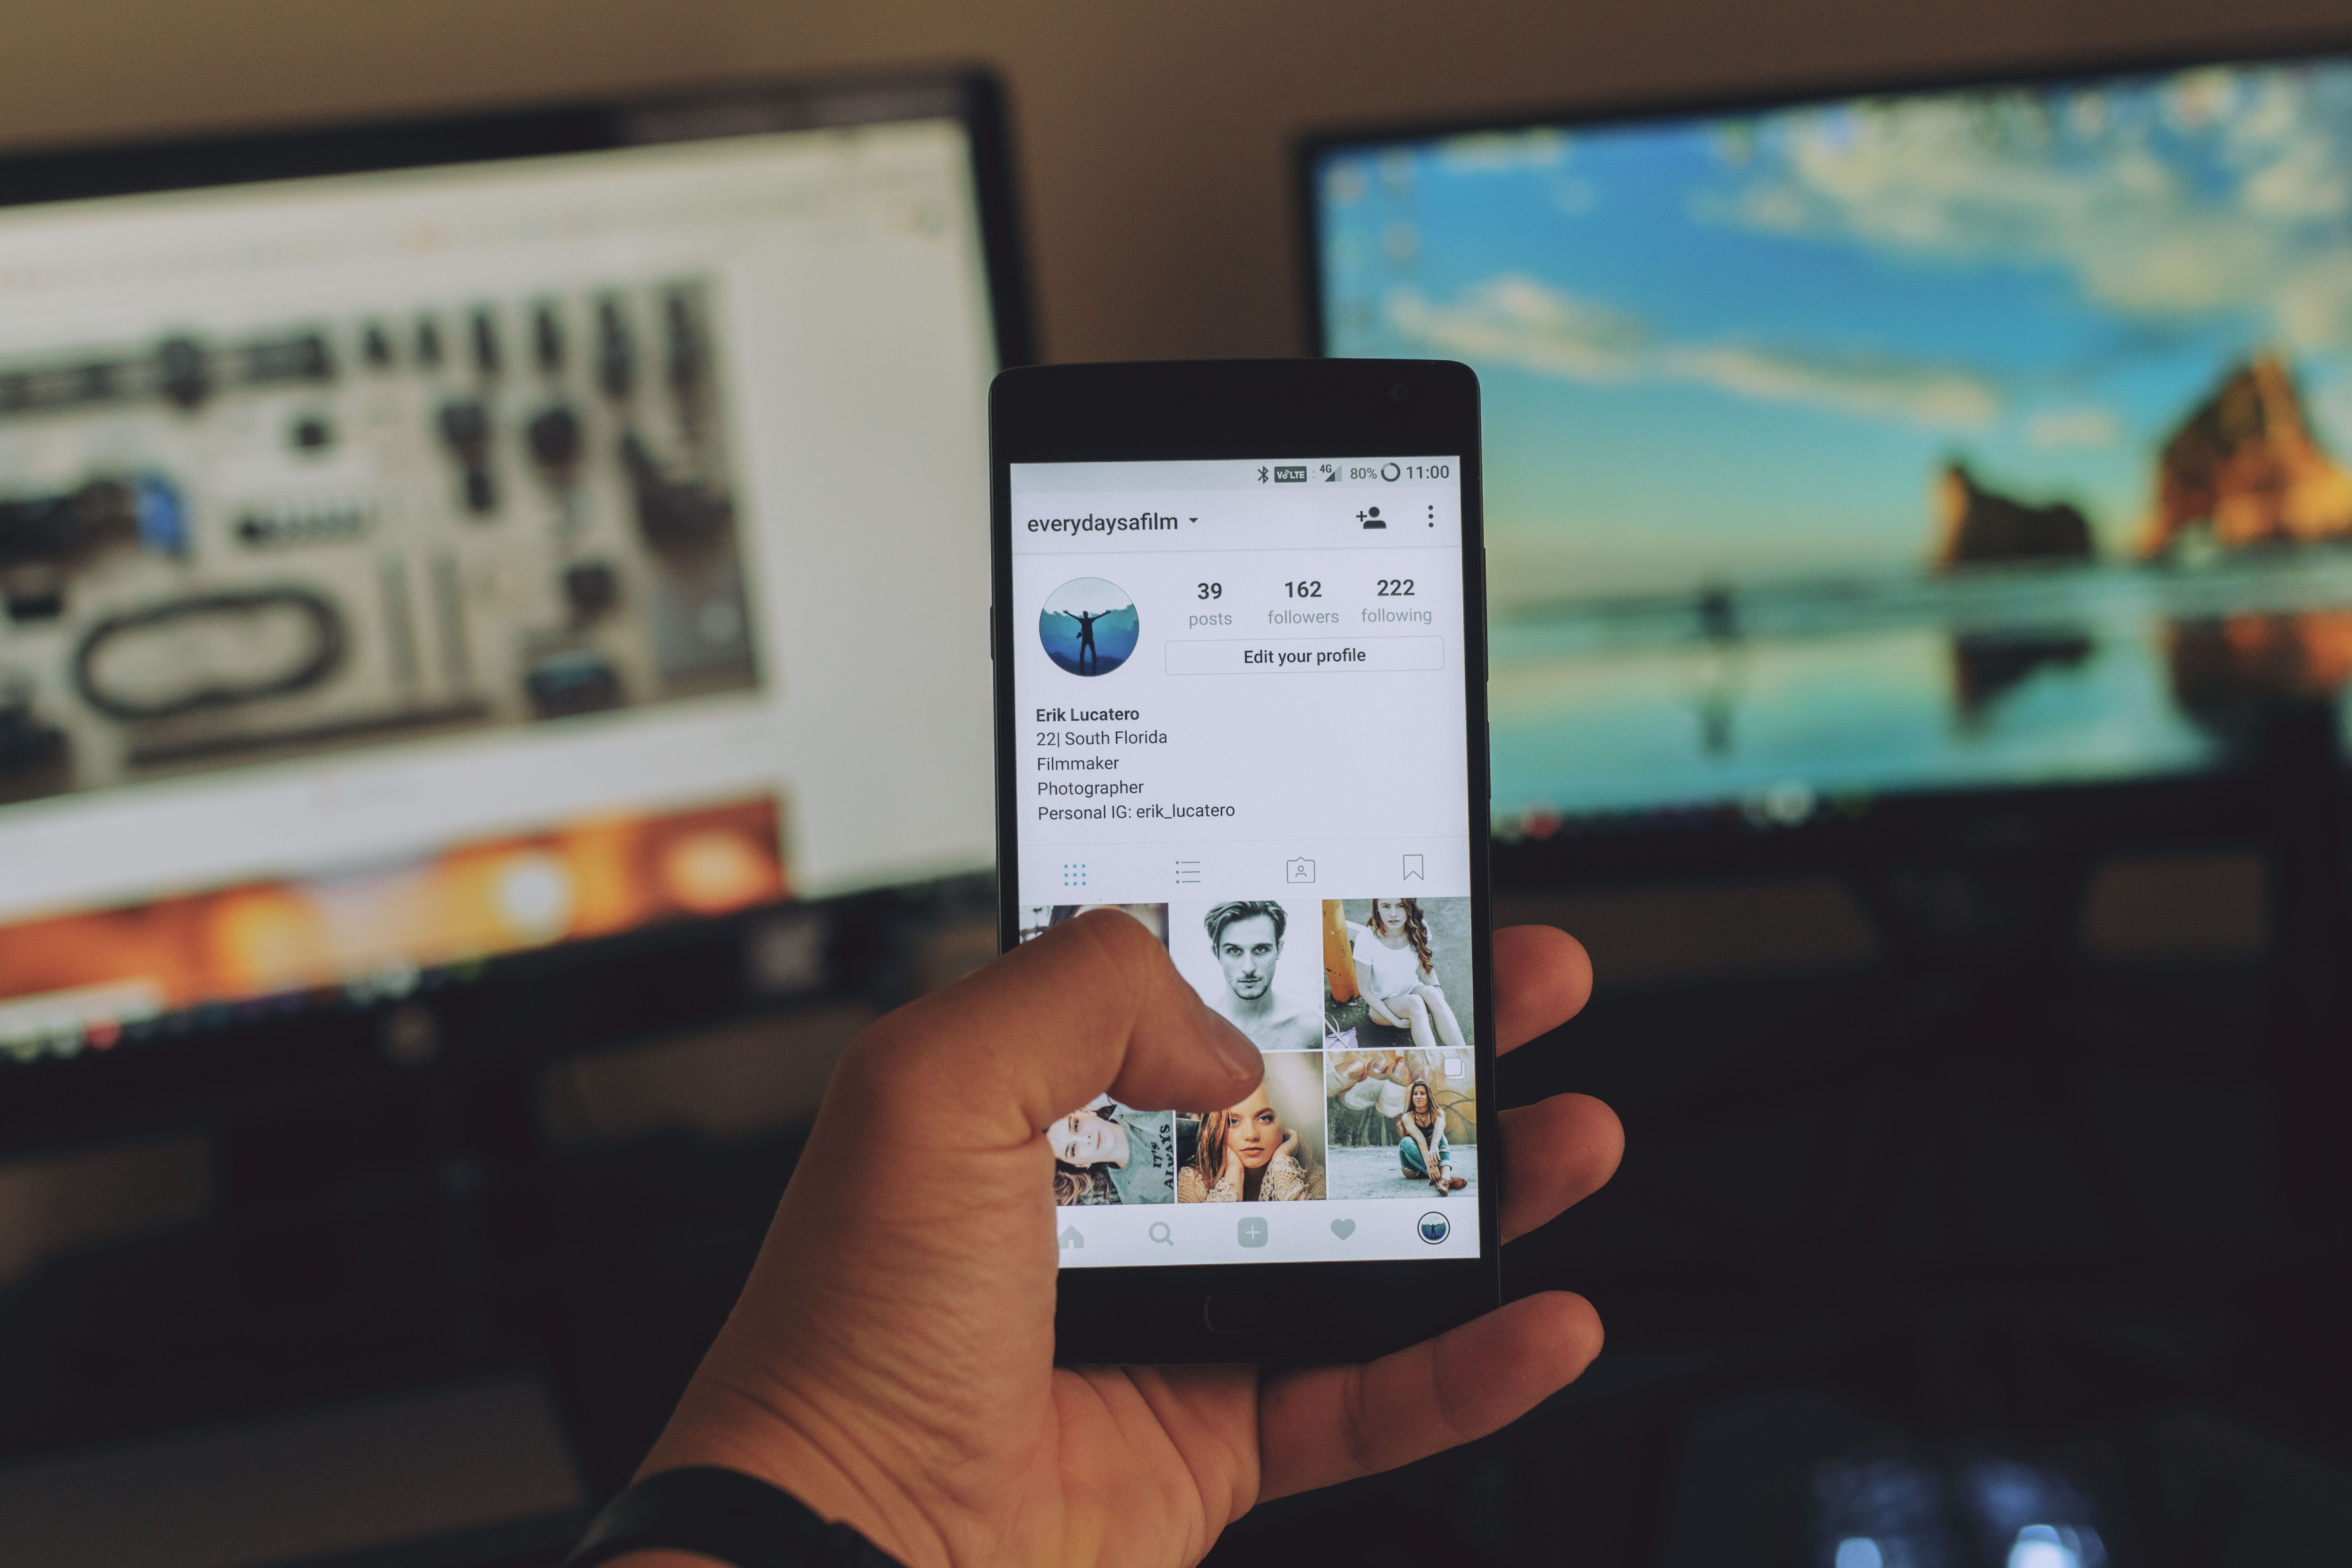 A person holding up a smartphone showing an Instagram profile